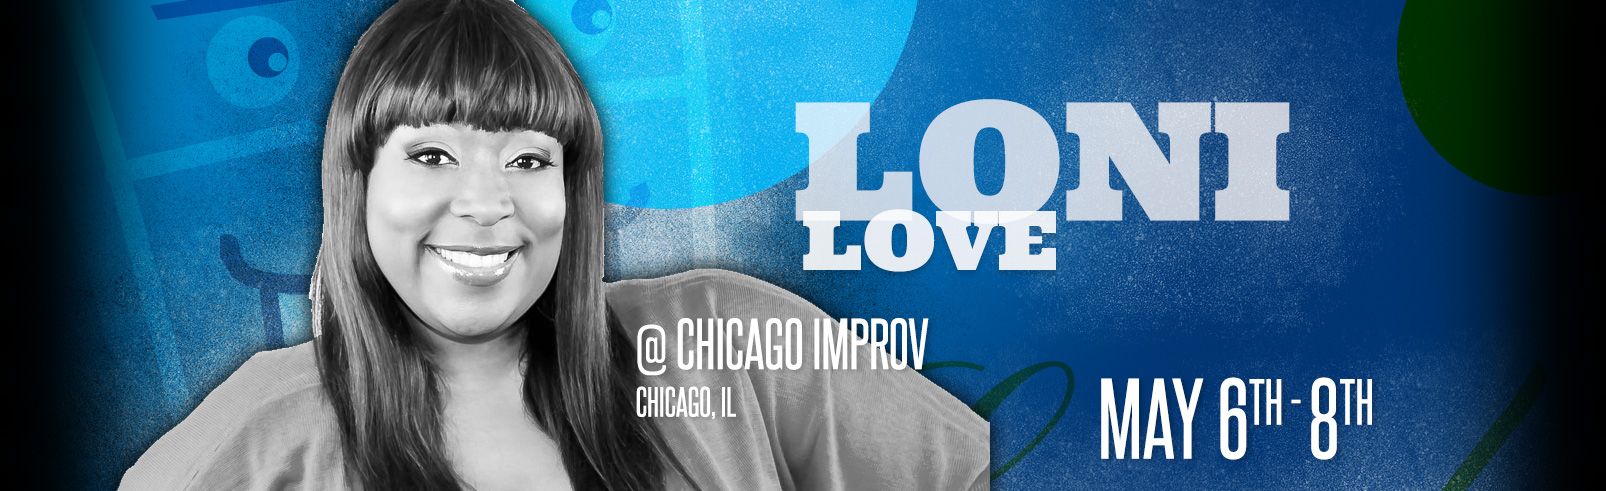 Loni Love @ Chicago Improv